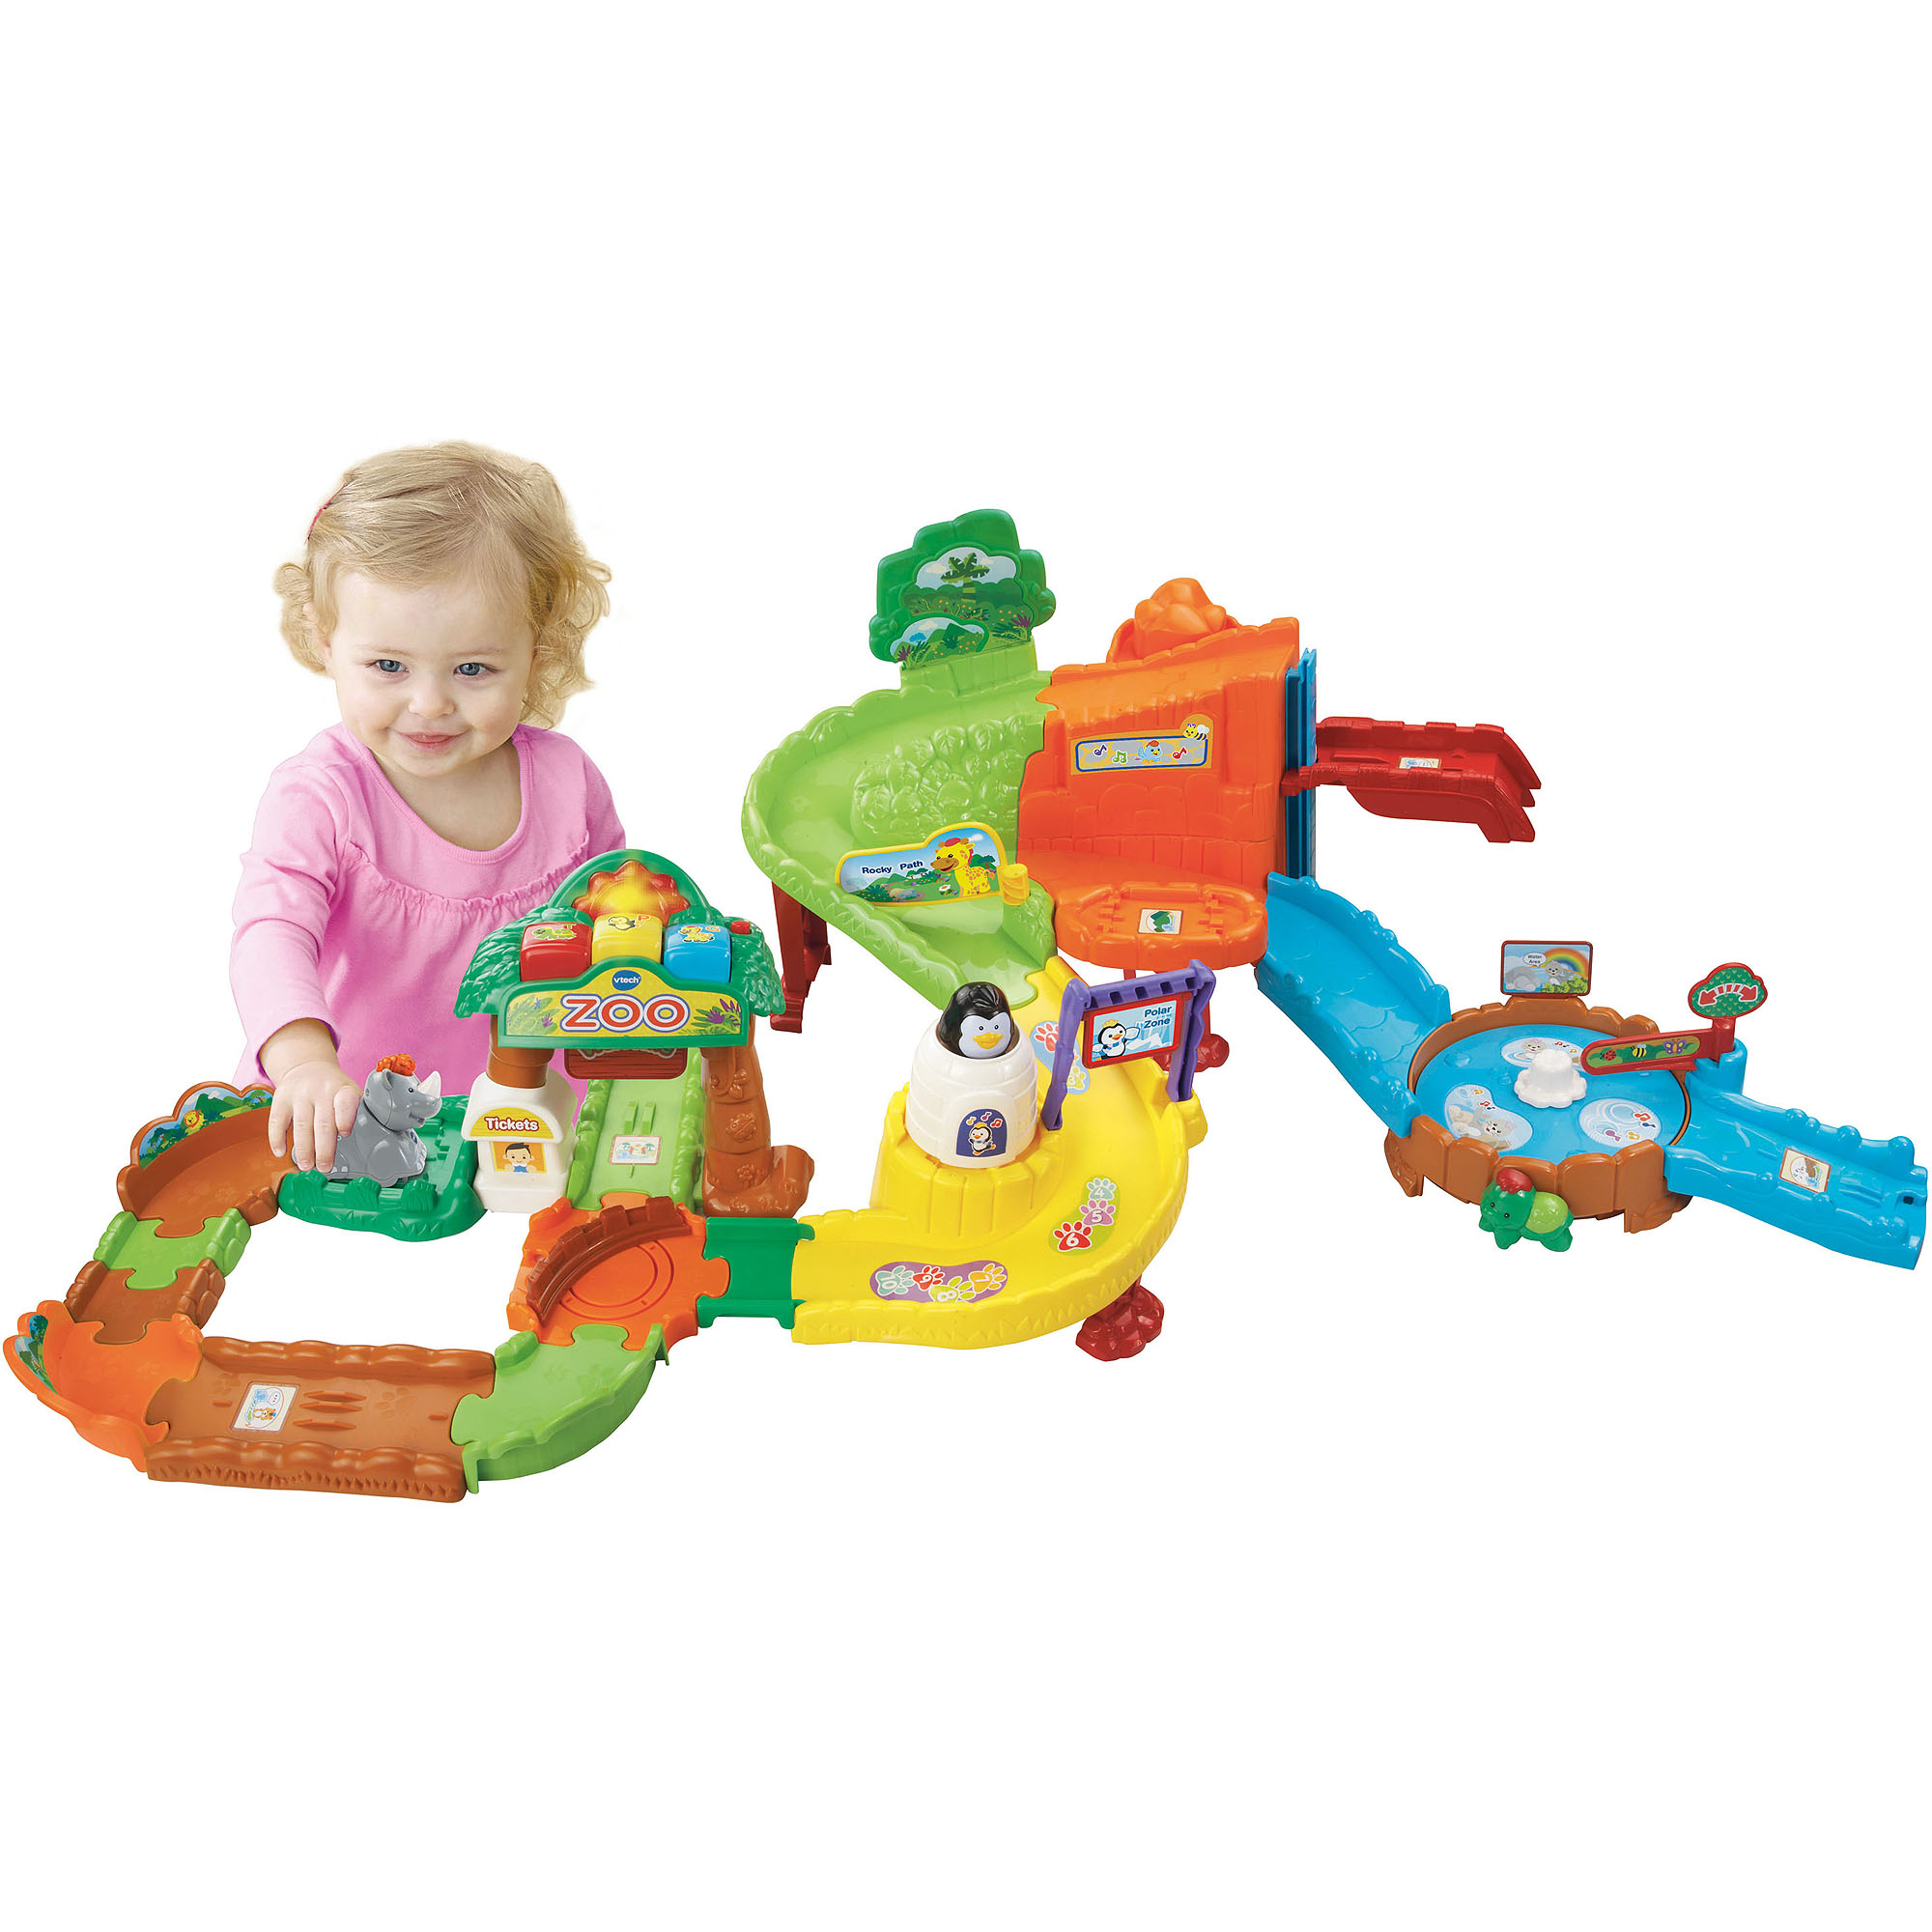 VTech Go! Go! Smart Animals Zoo Explorers Playset